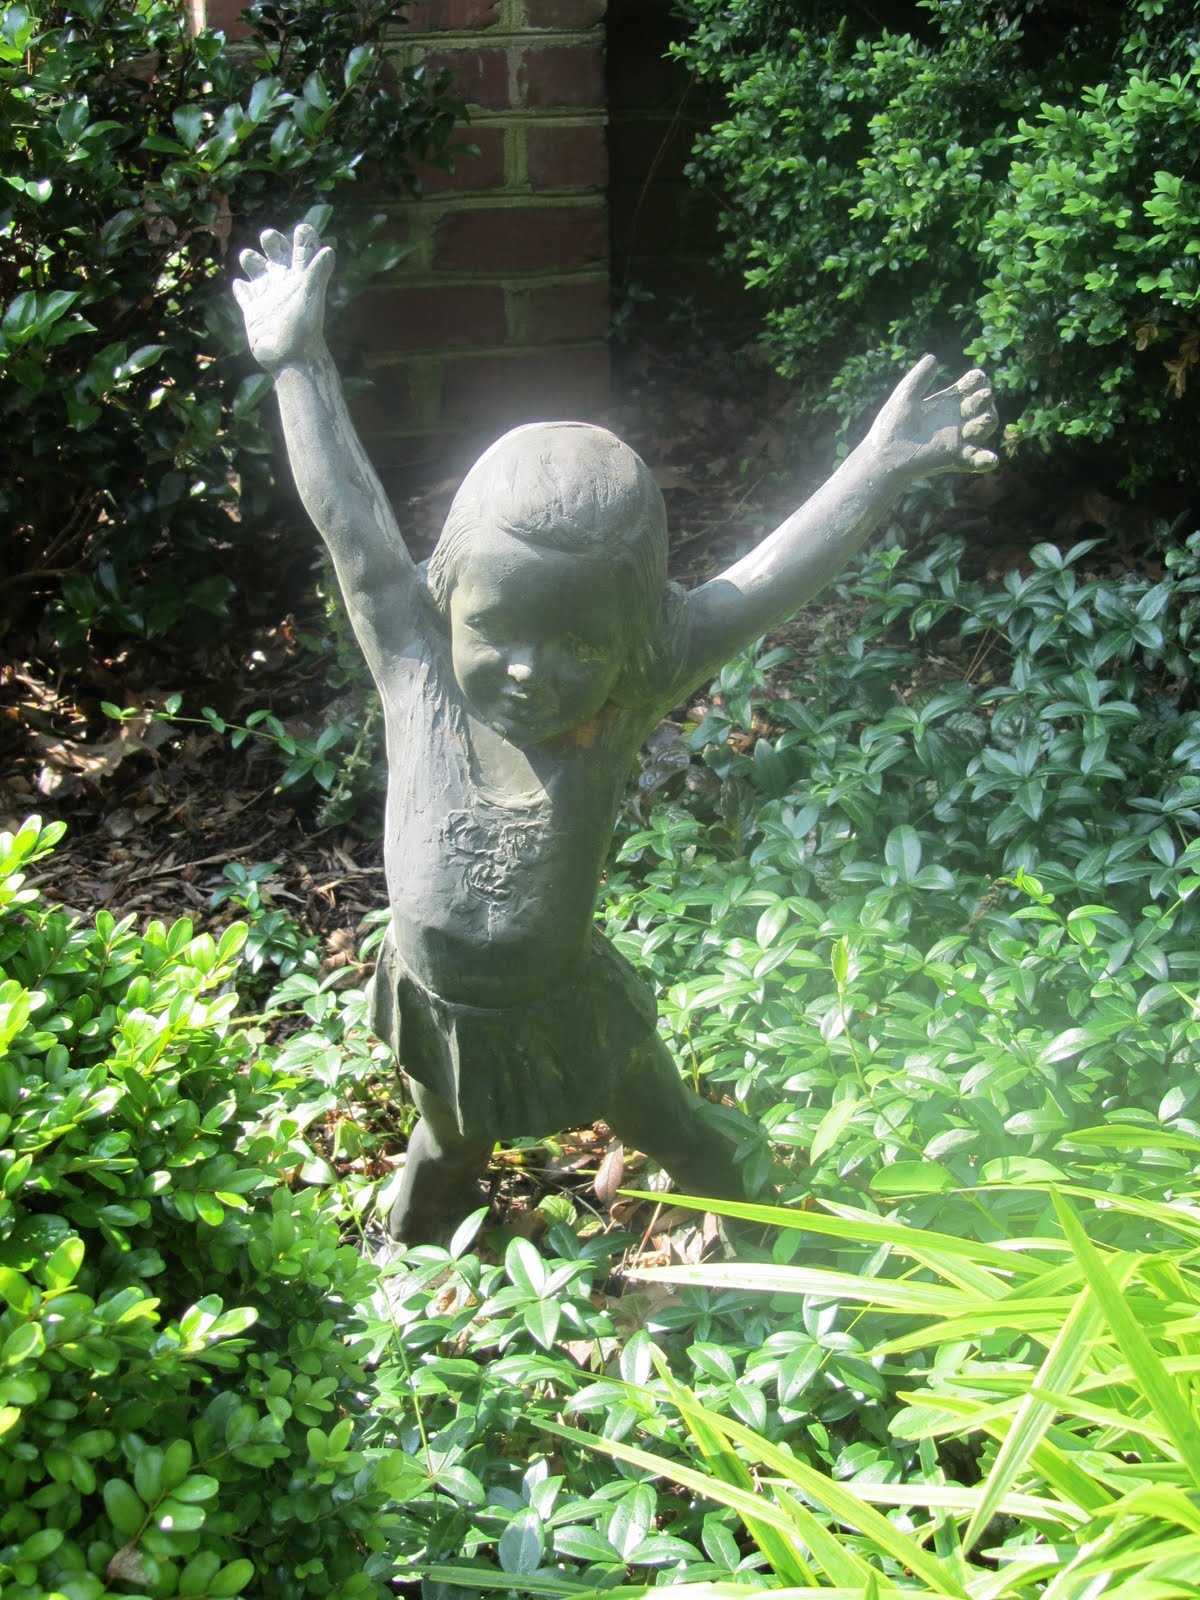 My Mom Has This Little Girl Statue In The Garden And She Says It Reminds  Her Of Me. I Am An Only Child So.....well, There You Go.